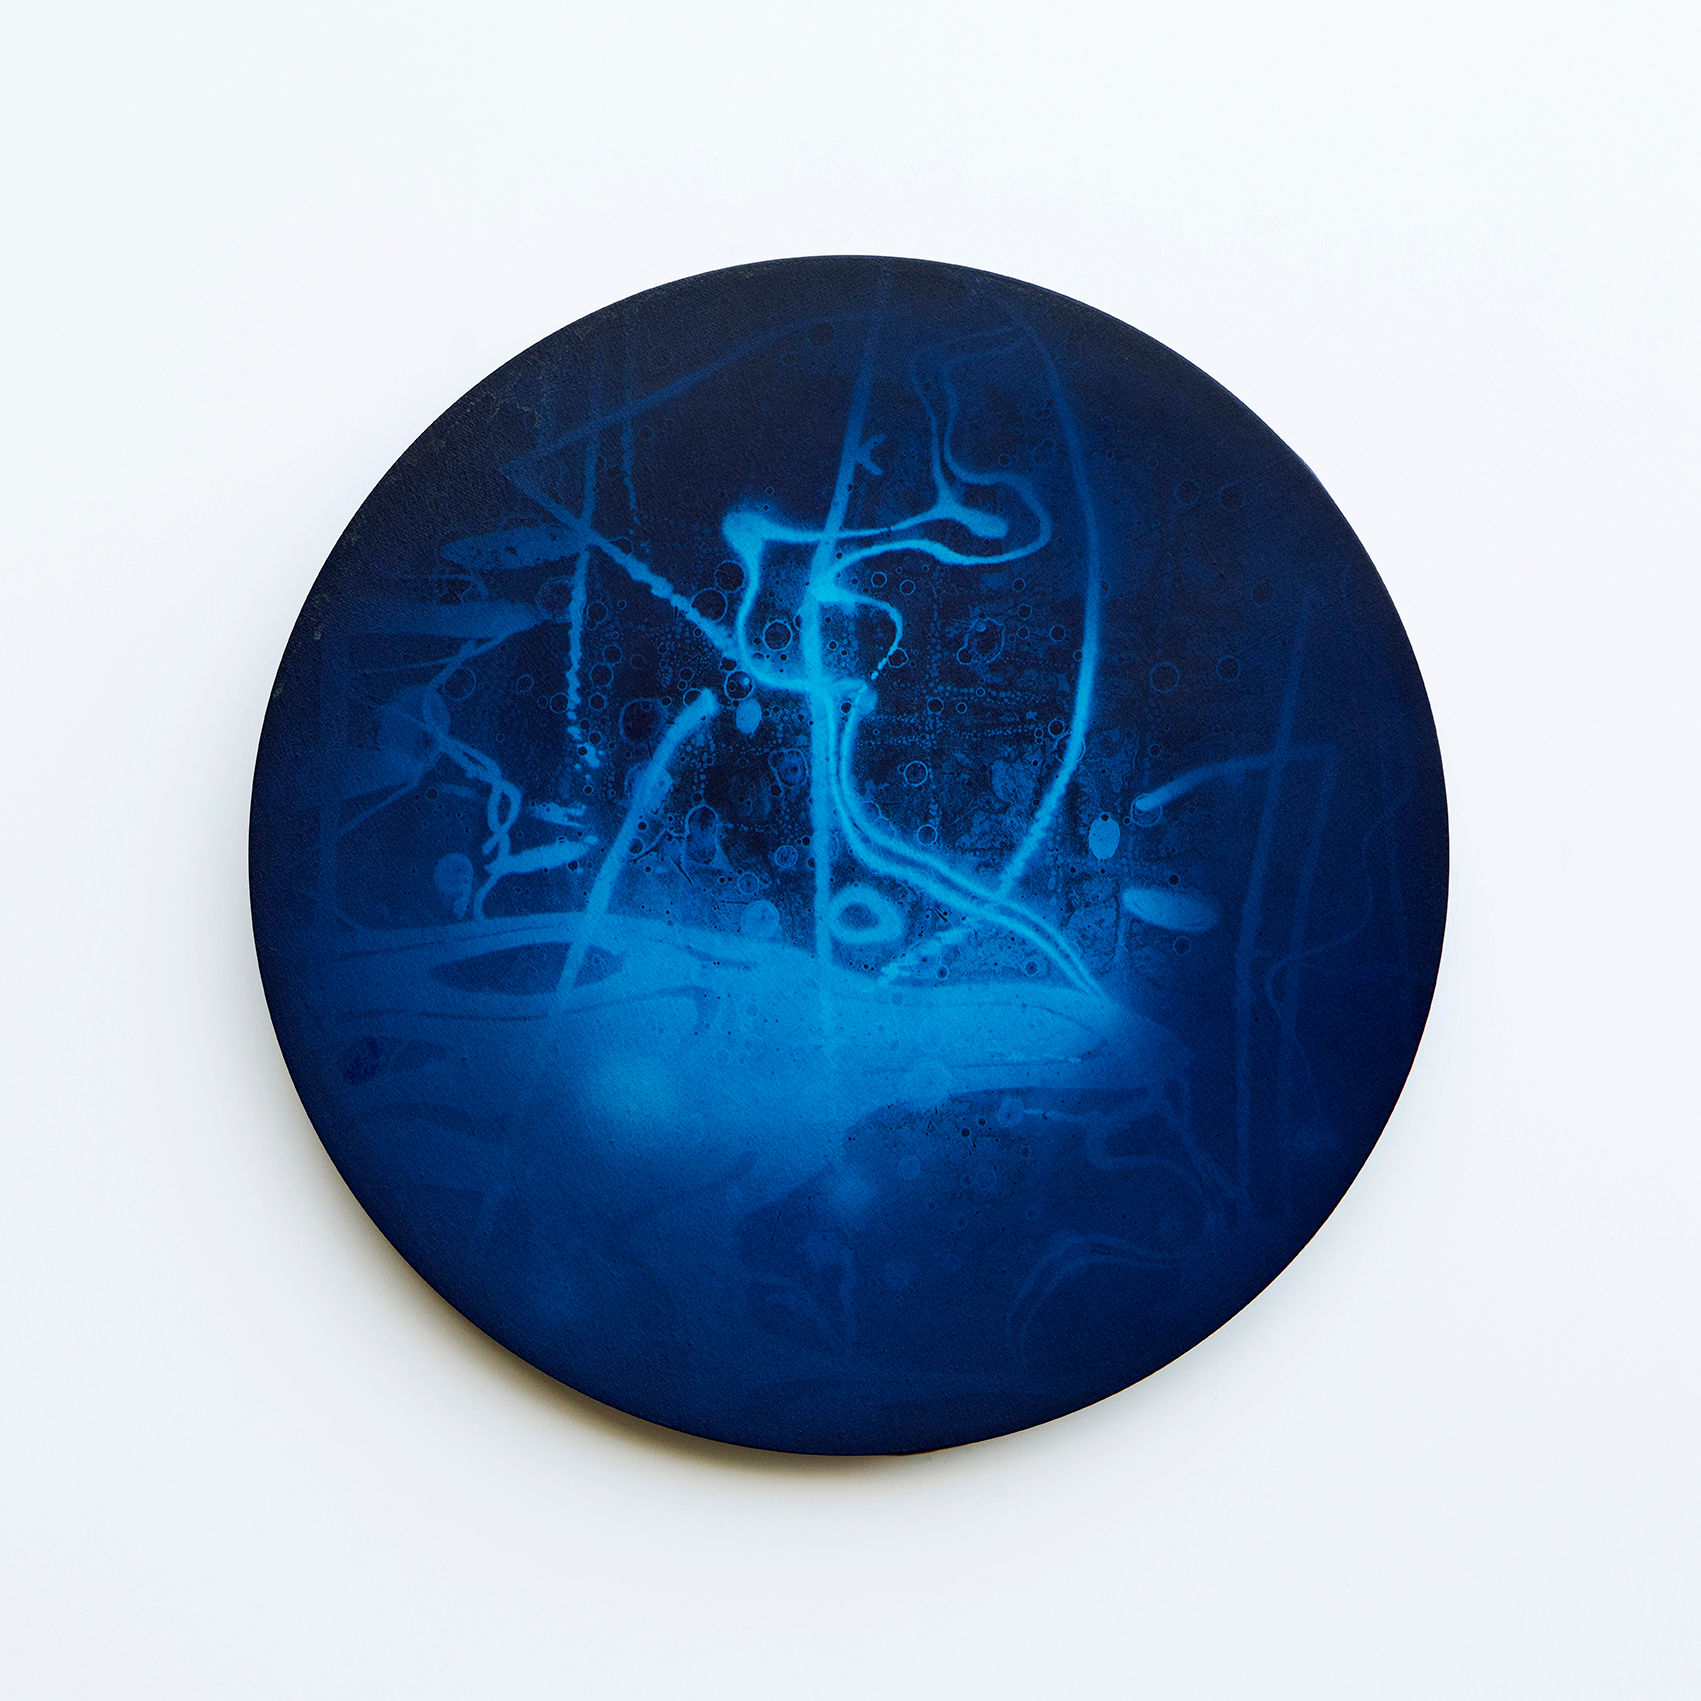 WATERSCAPE_내 안의 바깥 46, Diameter 40cm, Traditional pigment, water-print, water-drawing on canvas, 2018